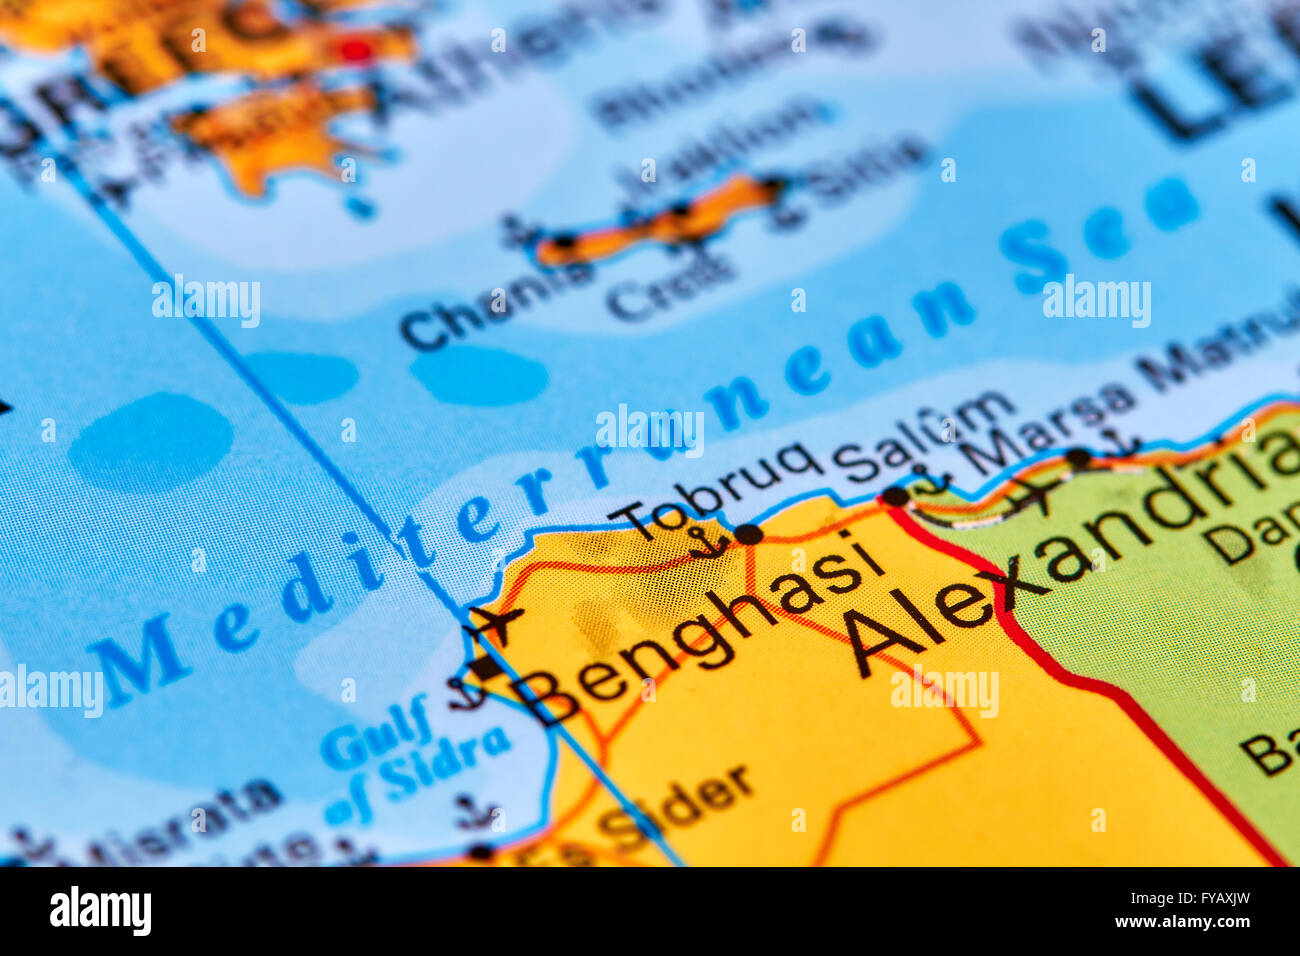 Map of mediterranean sea stock photos map of mediterranean sea the mediterranean sea europe on the world map stock image gumiabroncs